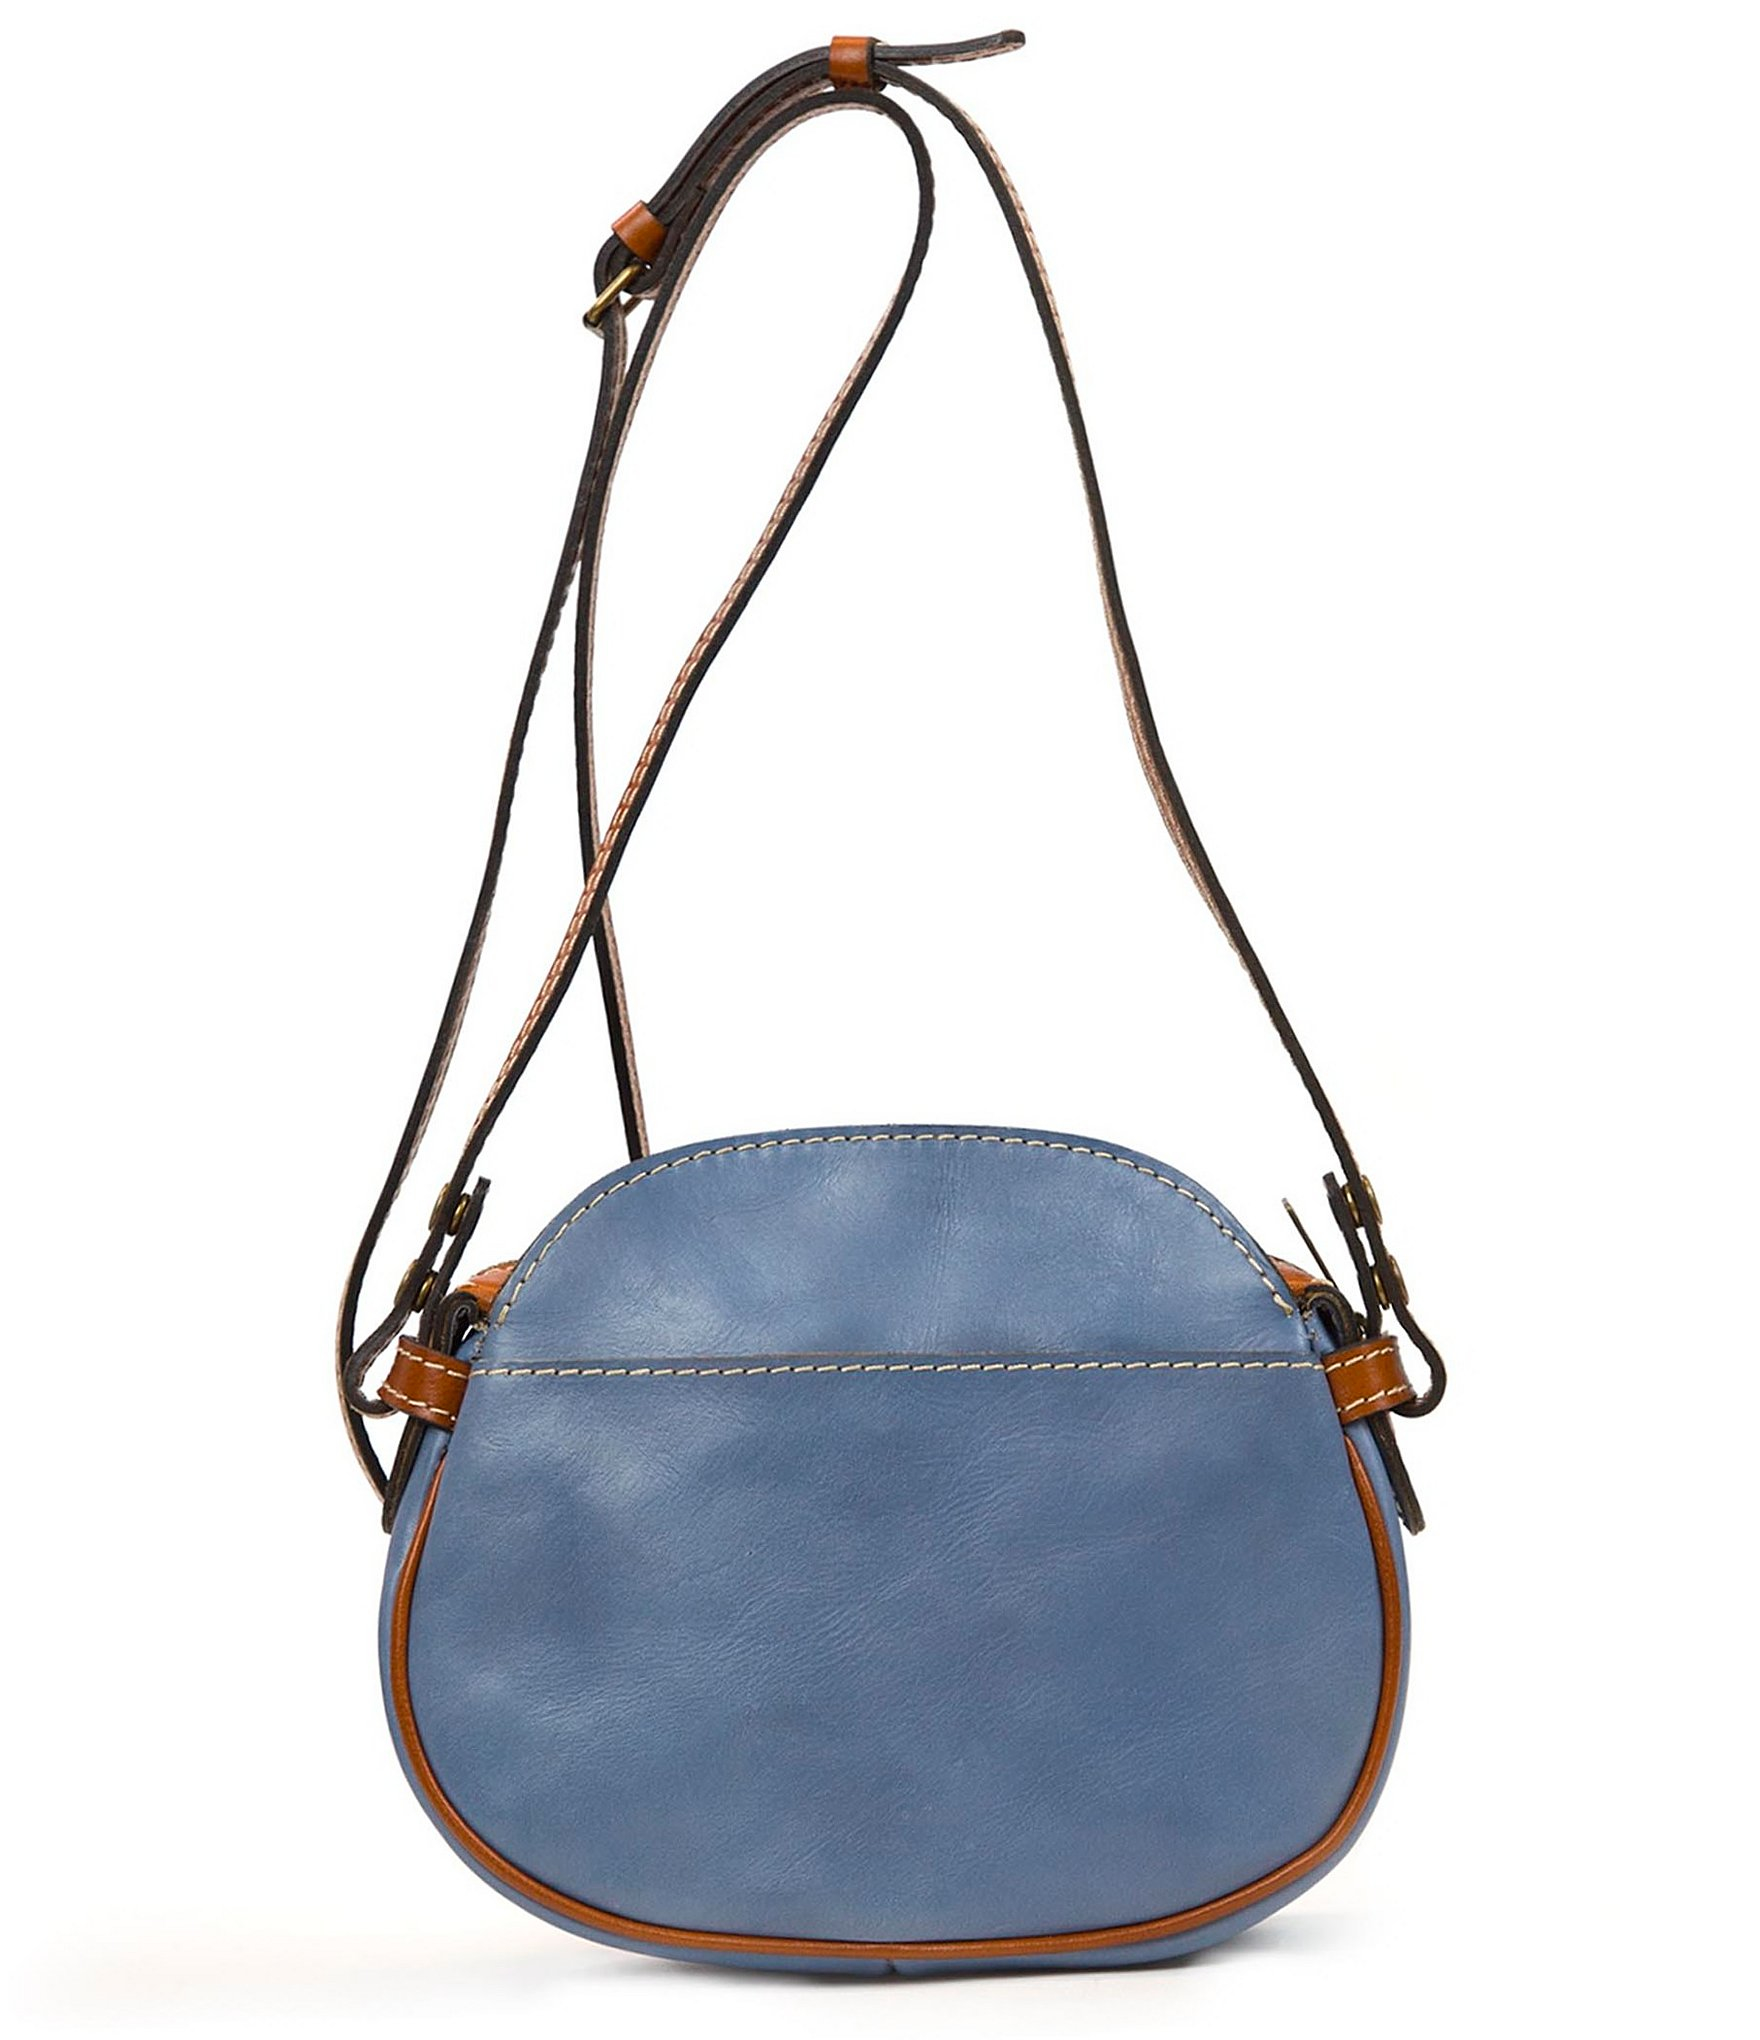 67c0a8c95 Lyst - Patricia Nash Chania Cross-body Bag in Blue